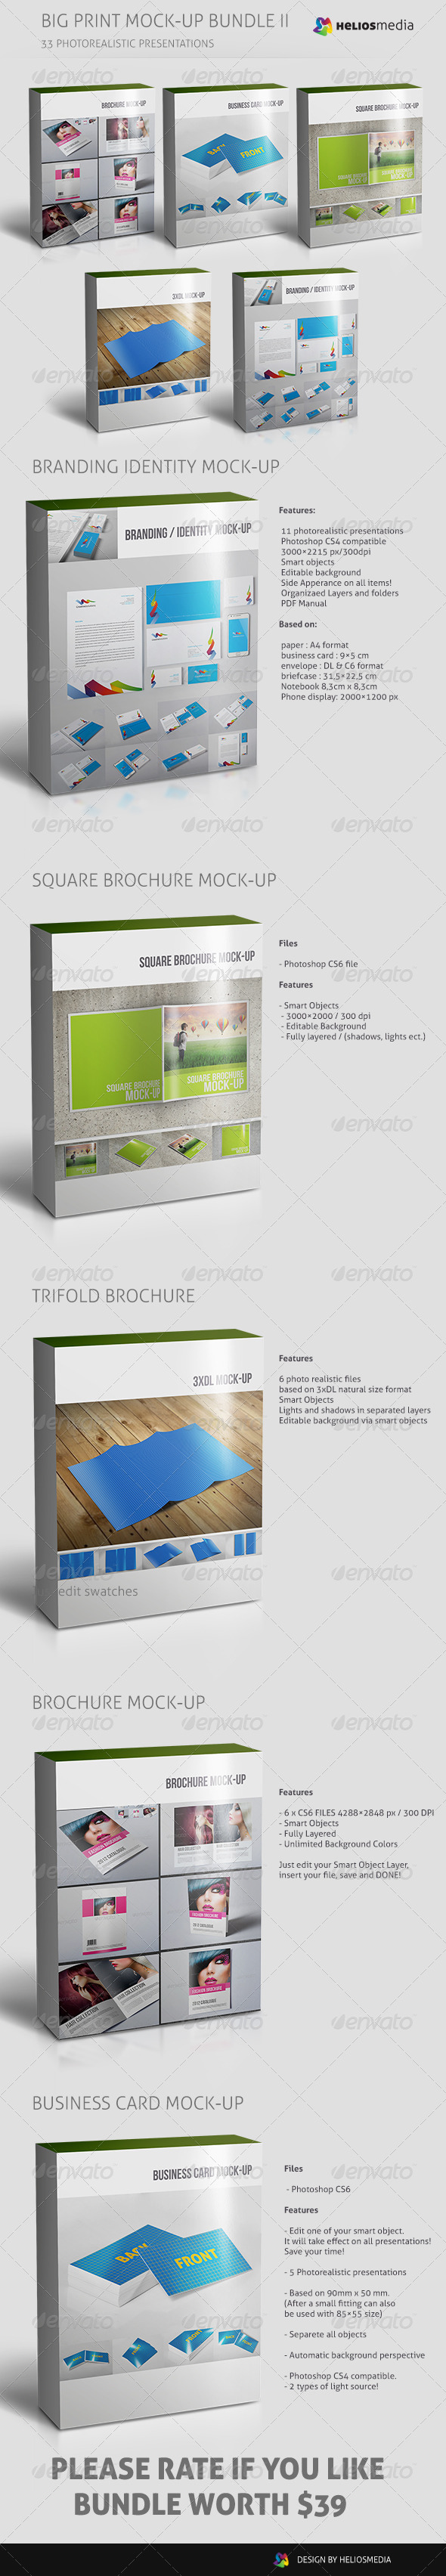 Big Print Mock-up Bundle II - Print Product Mock-Ups